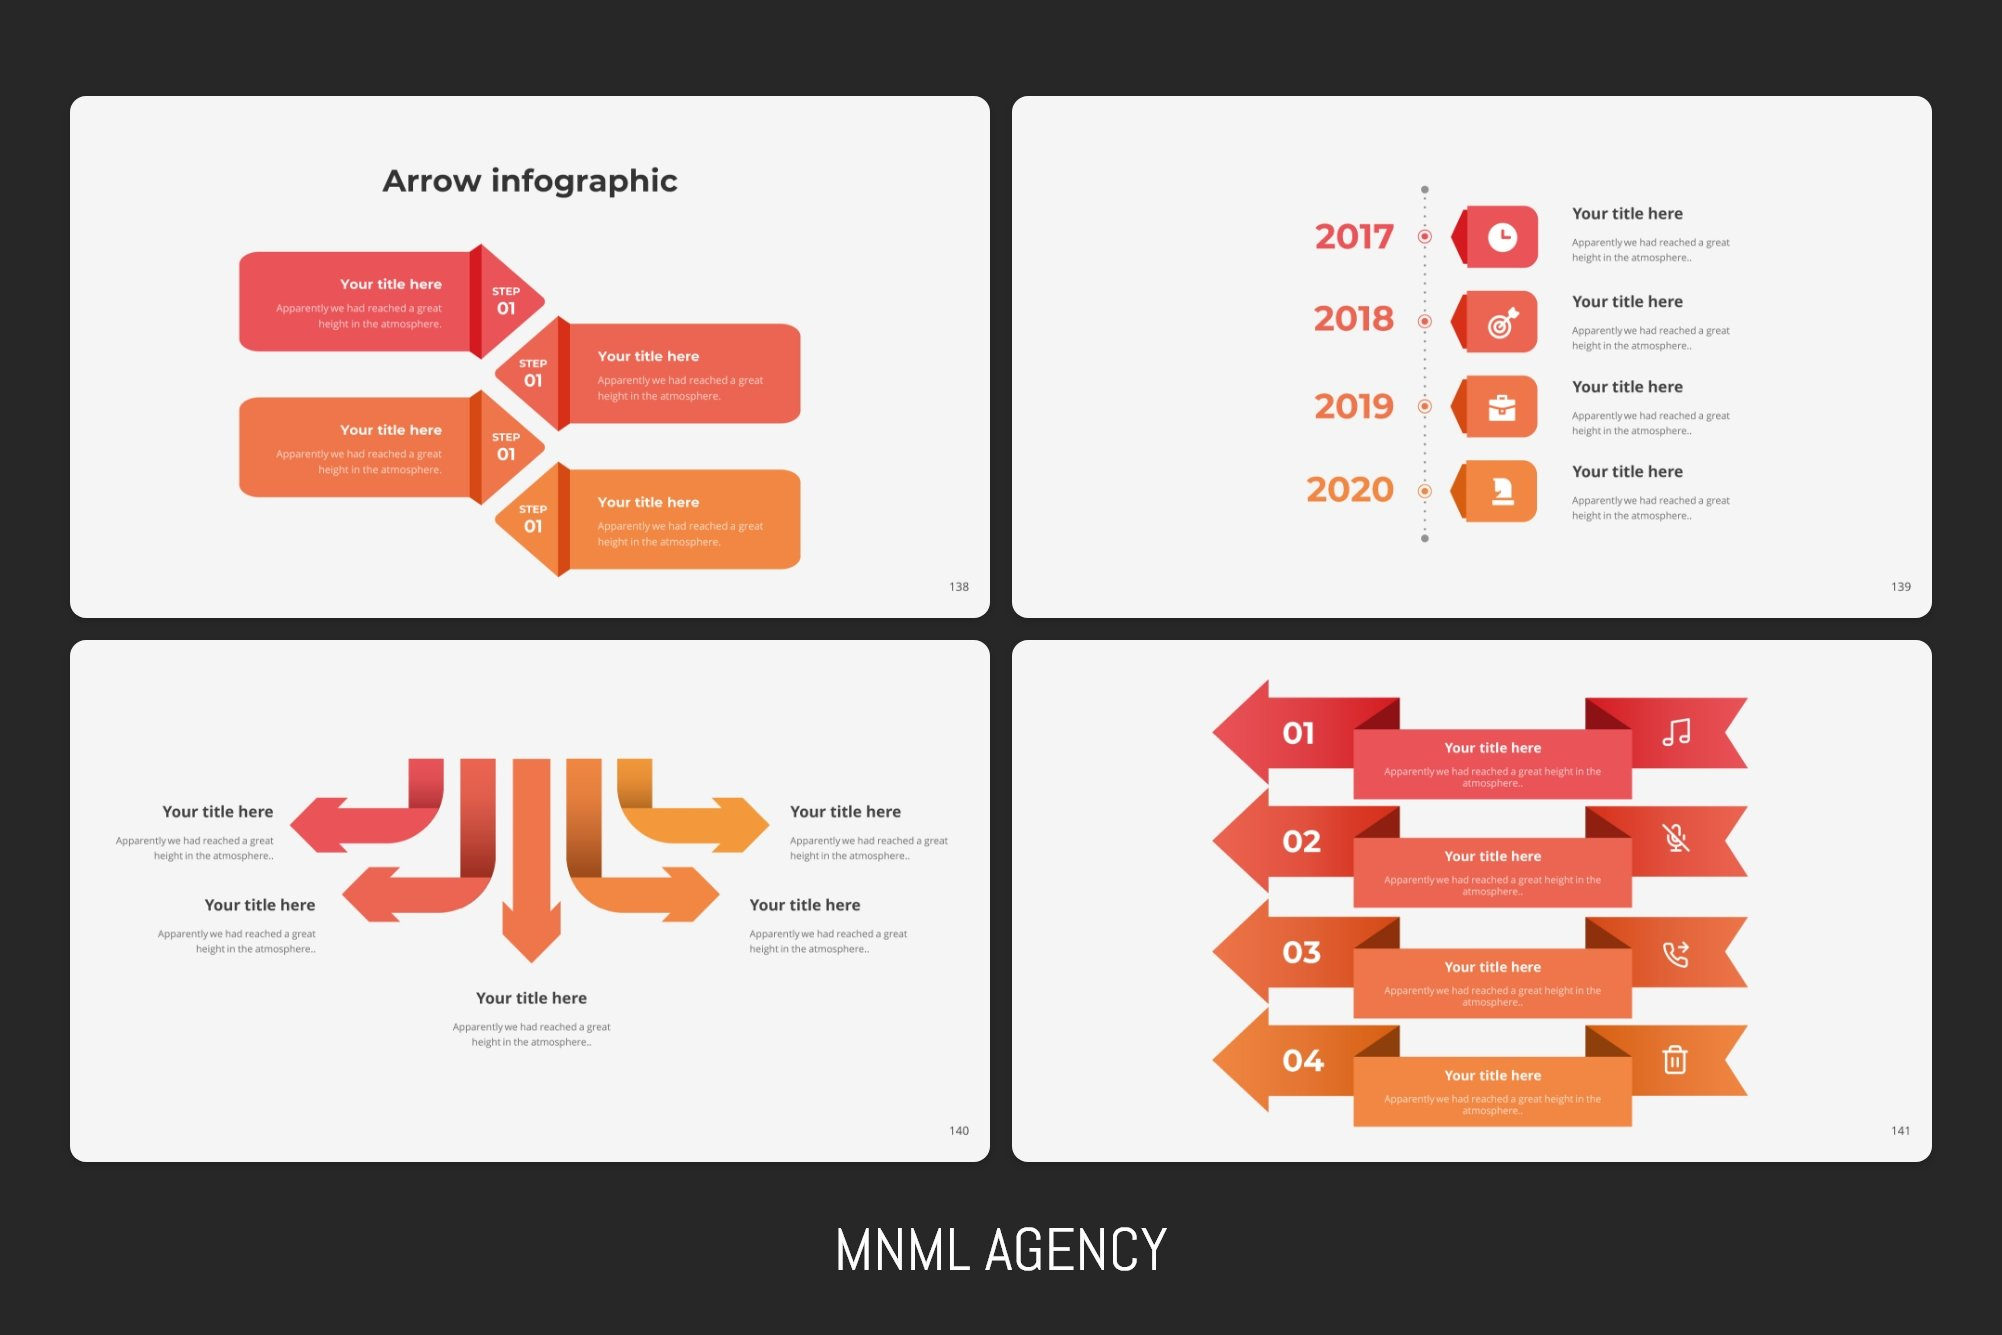 Arrow infographics with chronological information.